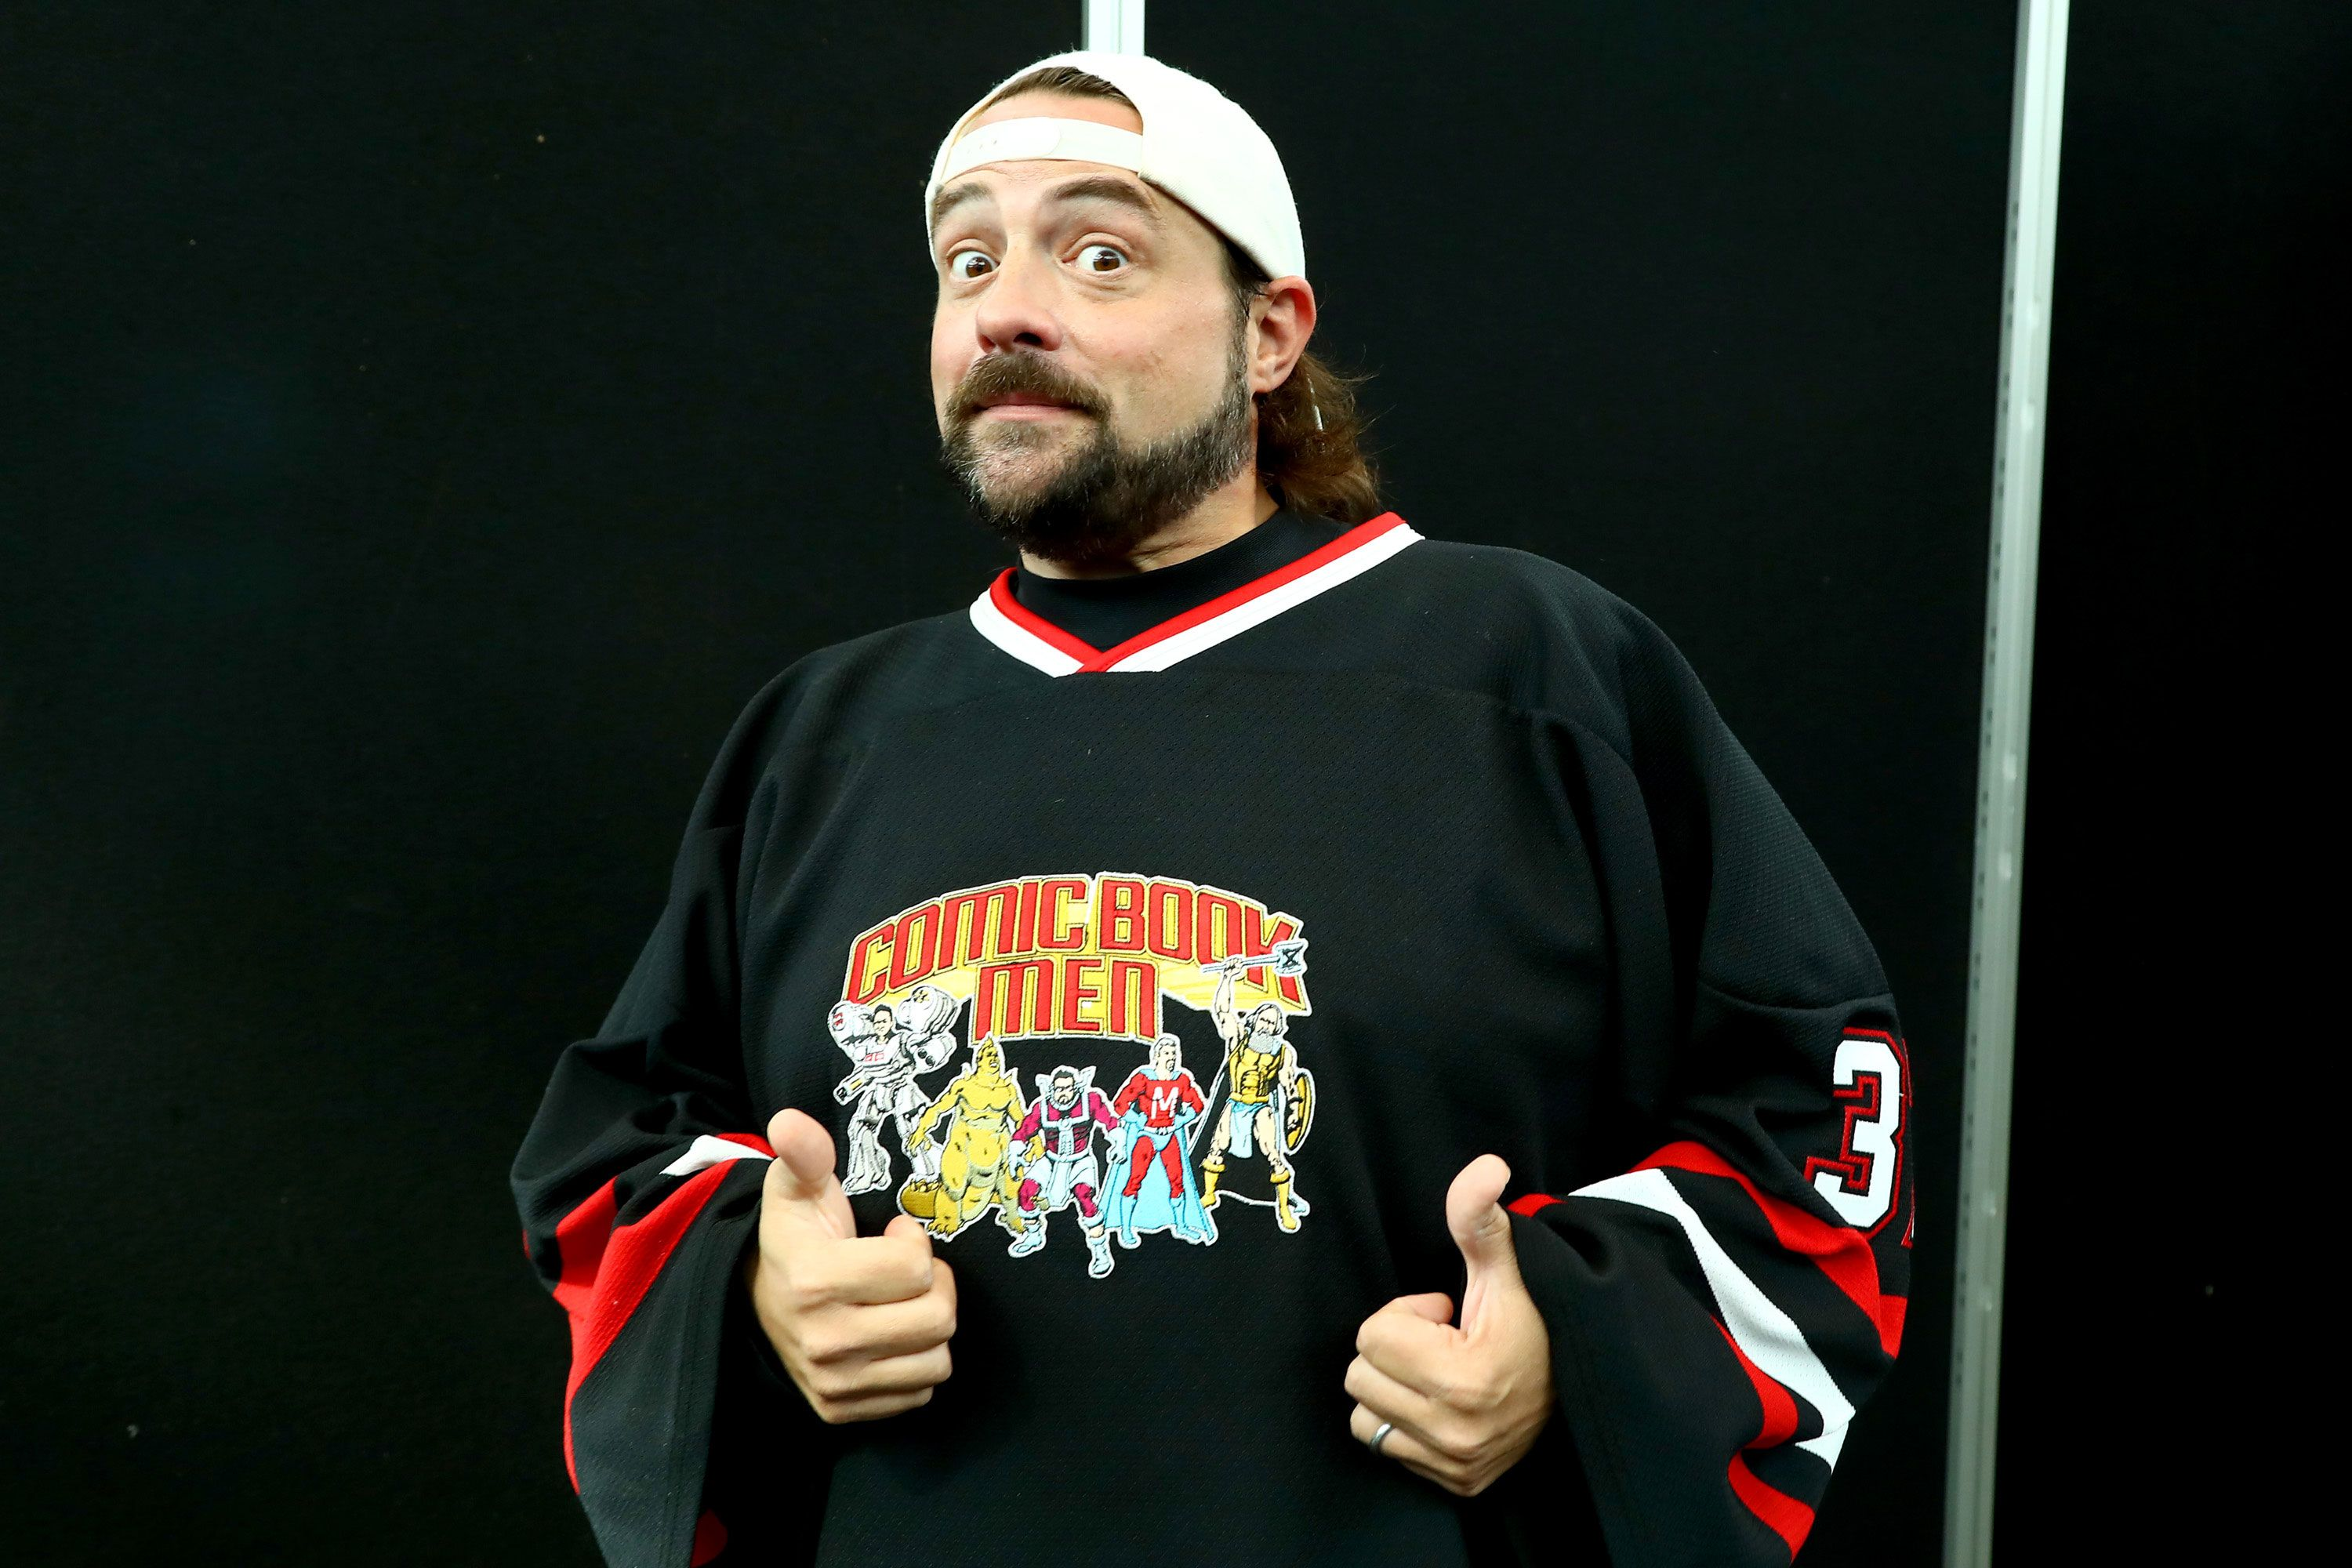 kevin smith actor